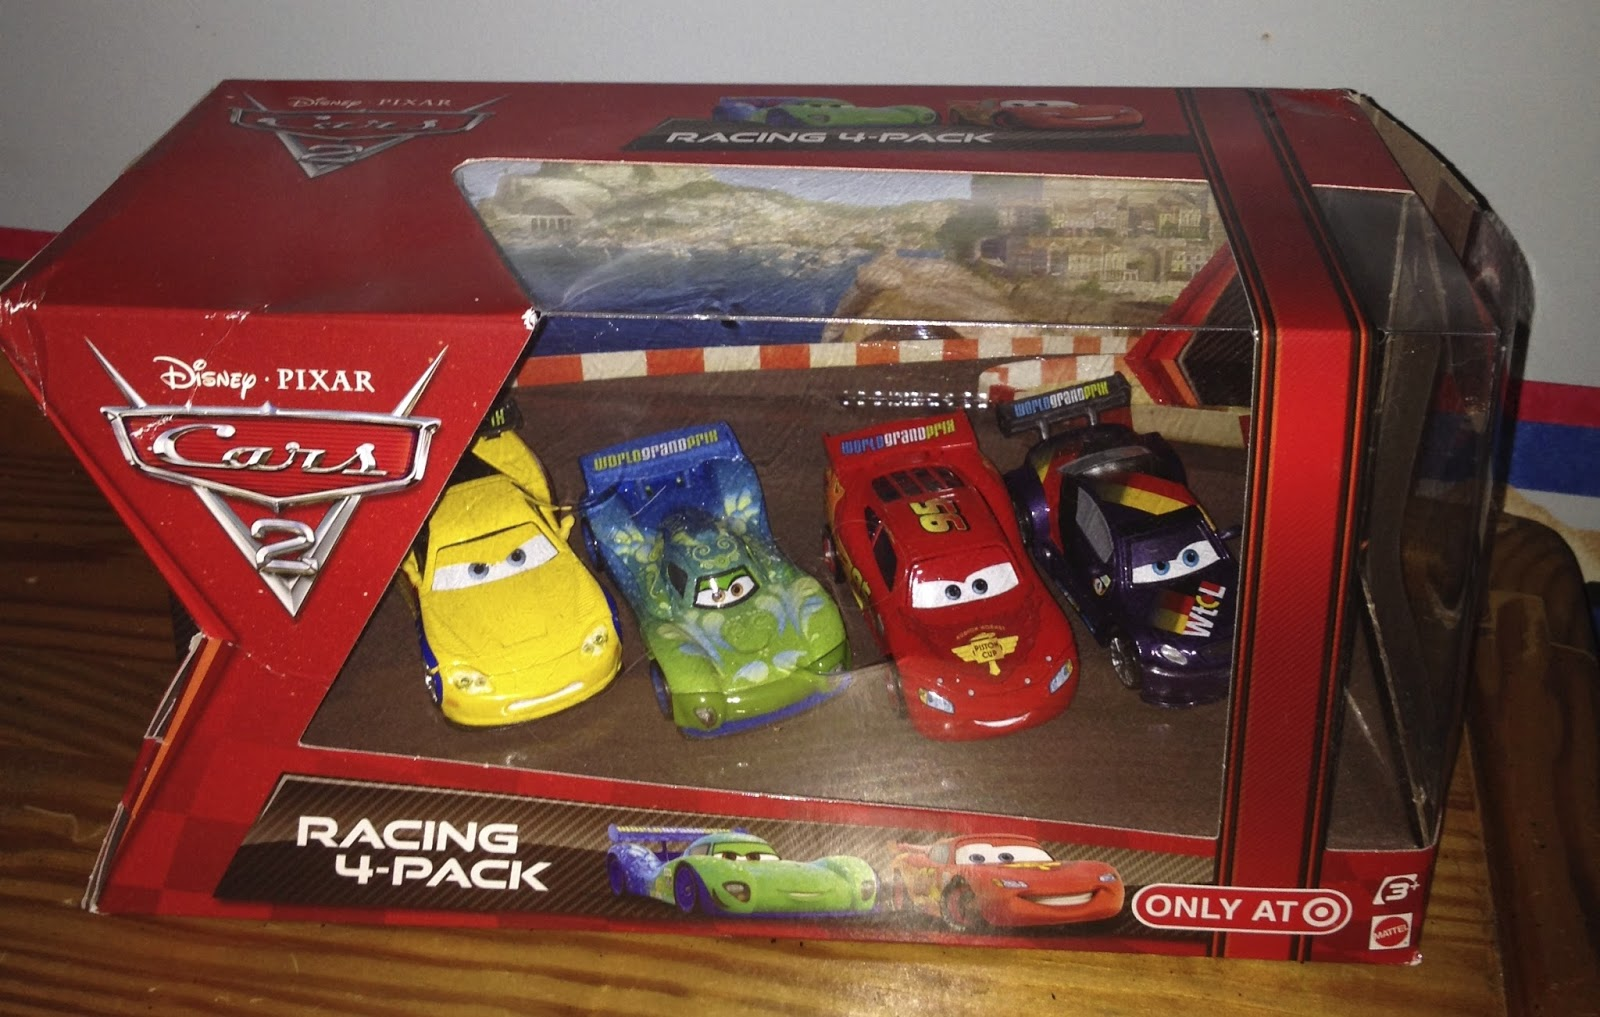 cars 2 target racing 4-pack disney pixar